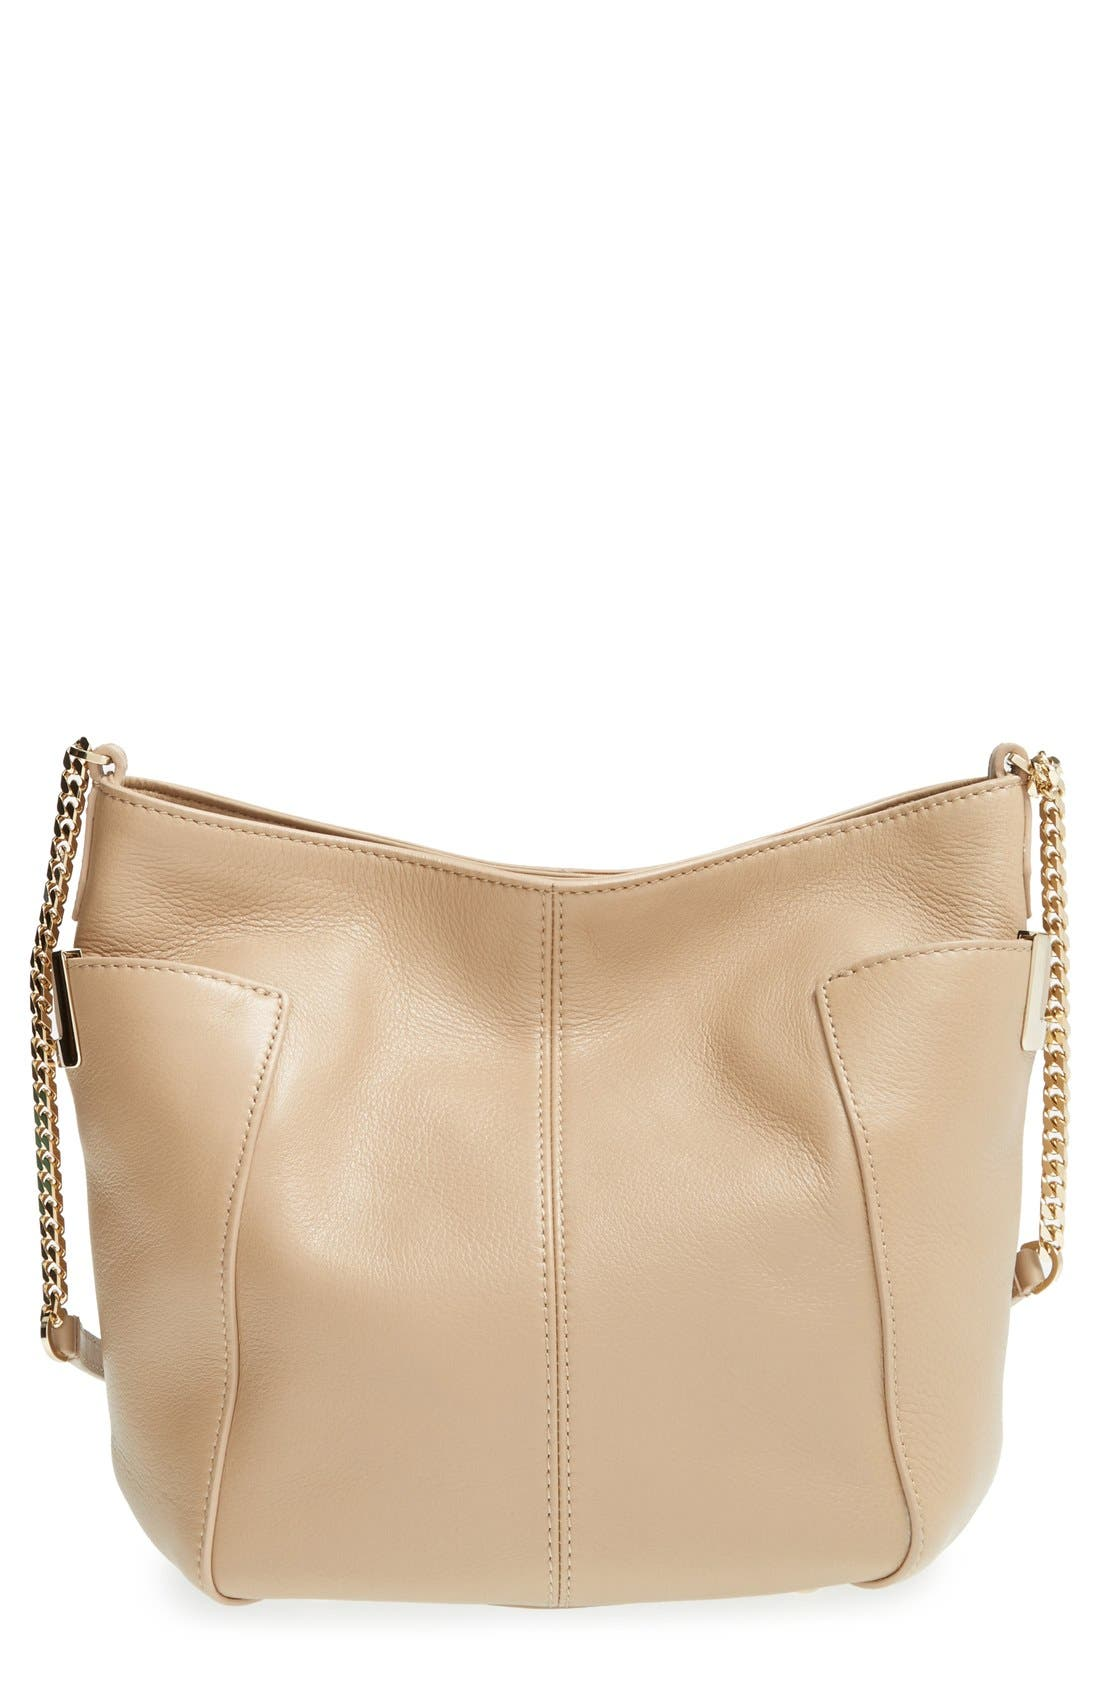 Alternate Image 1 Selected - Jimmy Choo 'Small Anabel' Leather Crossbody Bag